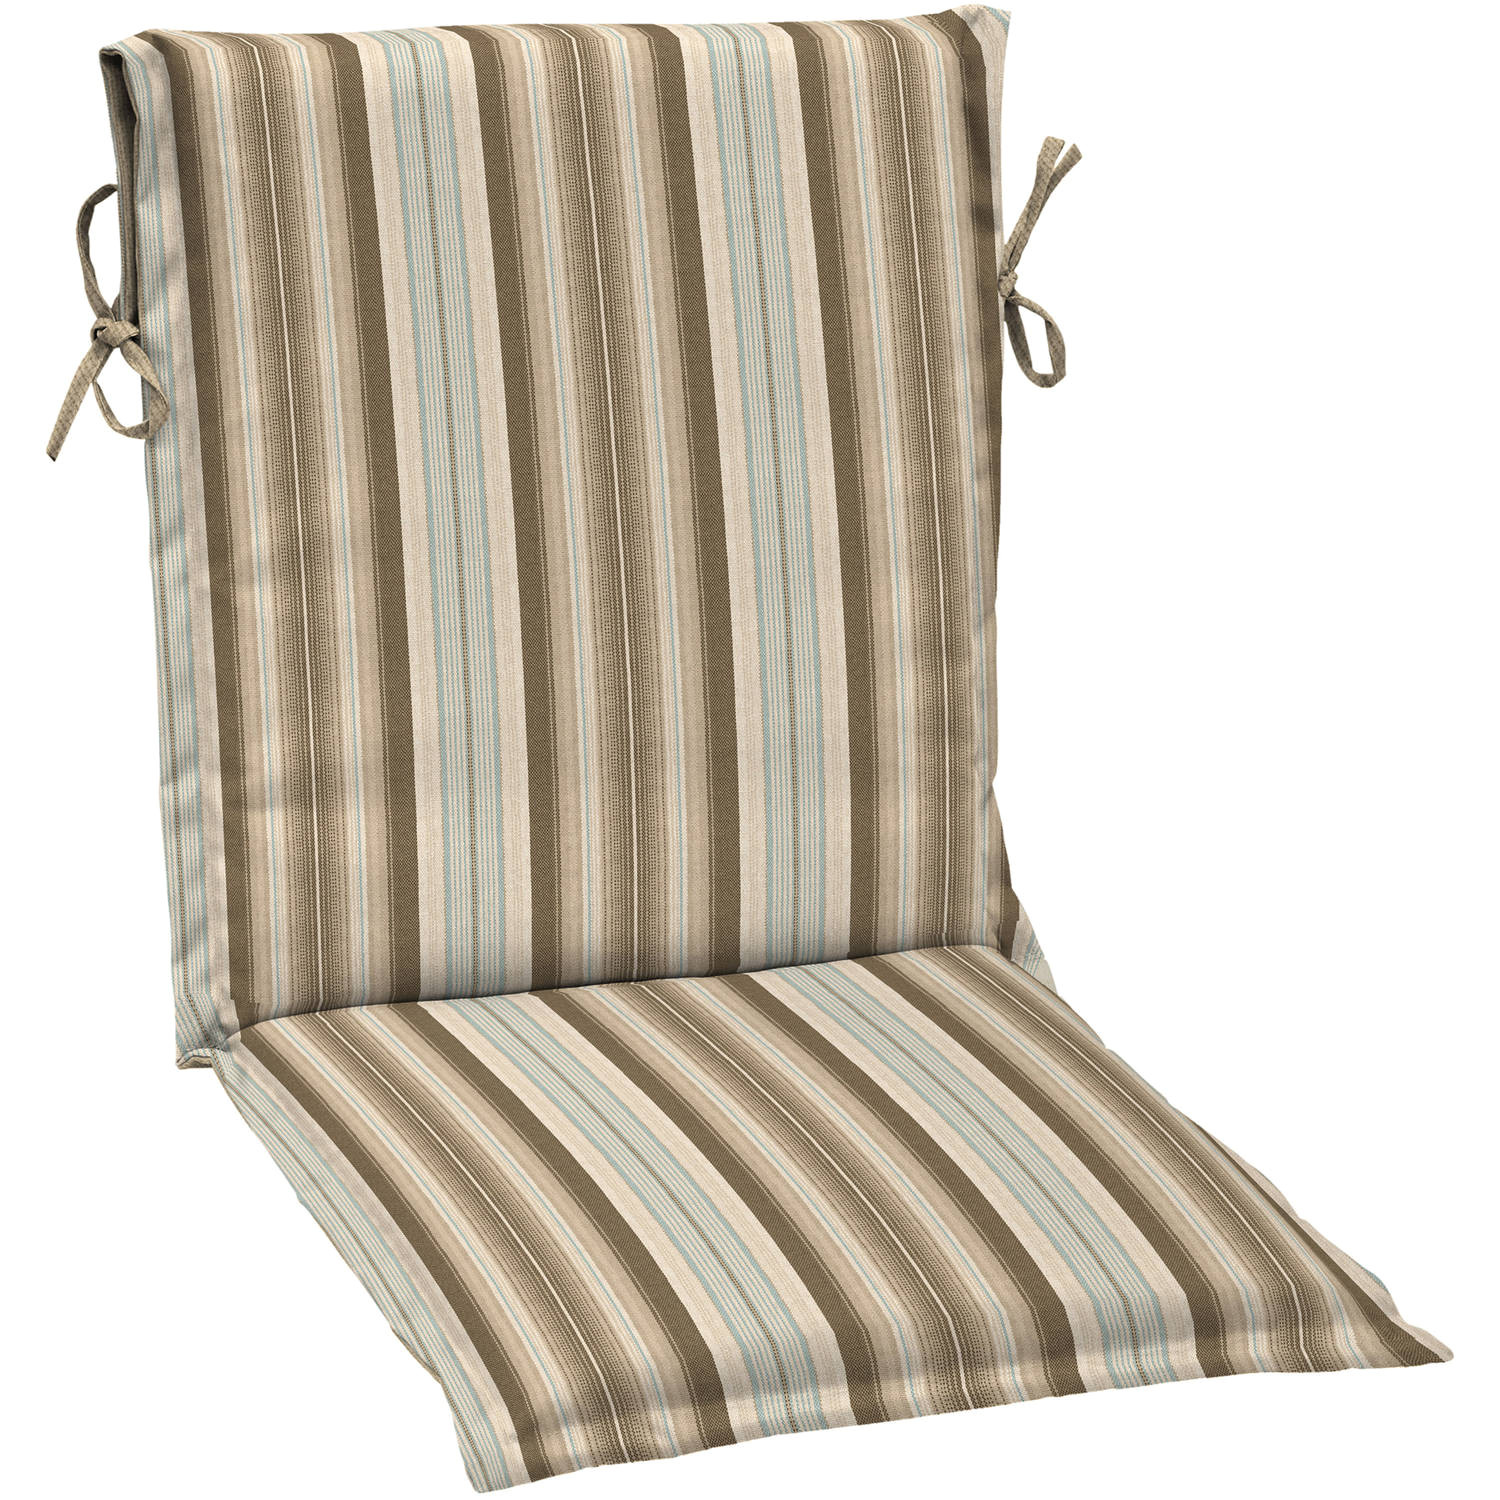 full size of chair custom chair cushions outdoor patio furniture cushions customoutdoor replacement target custom